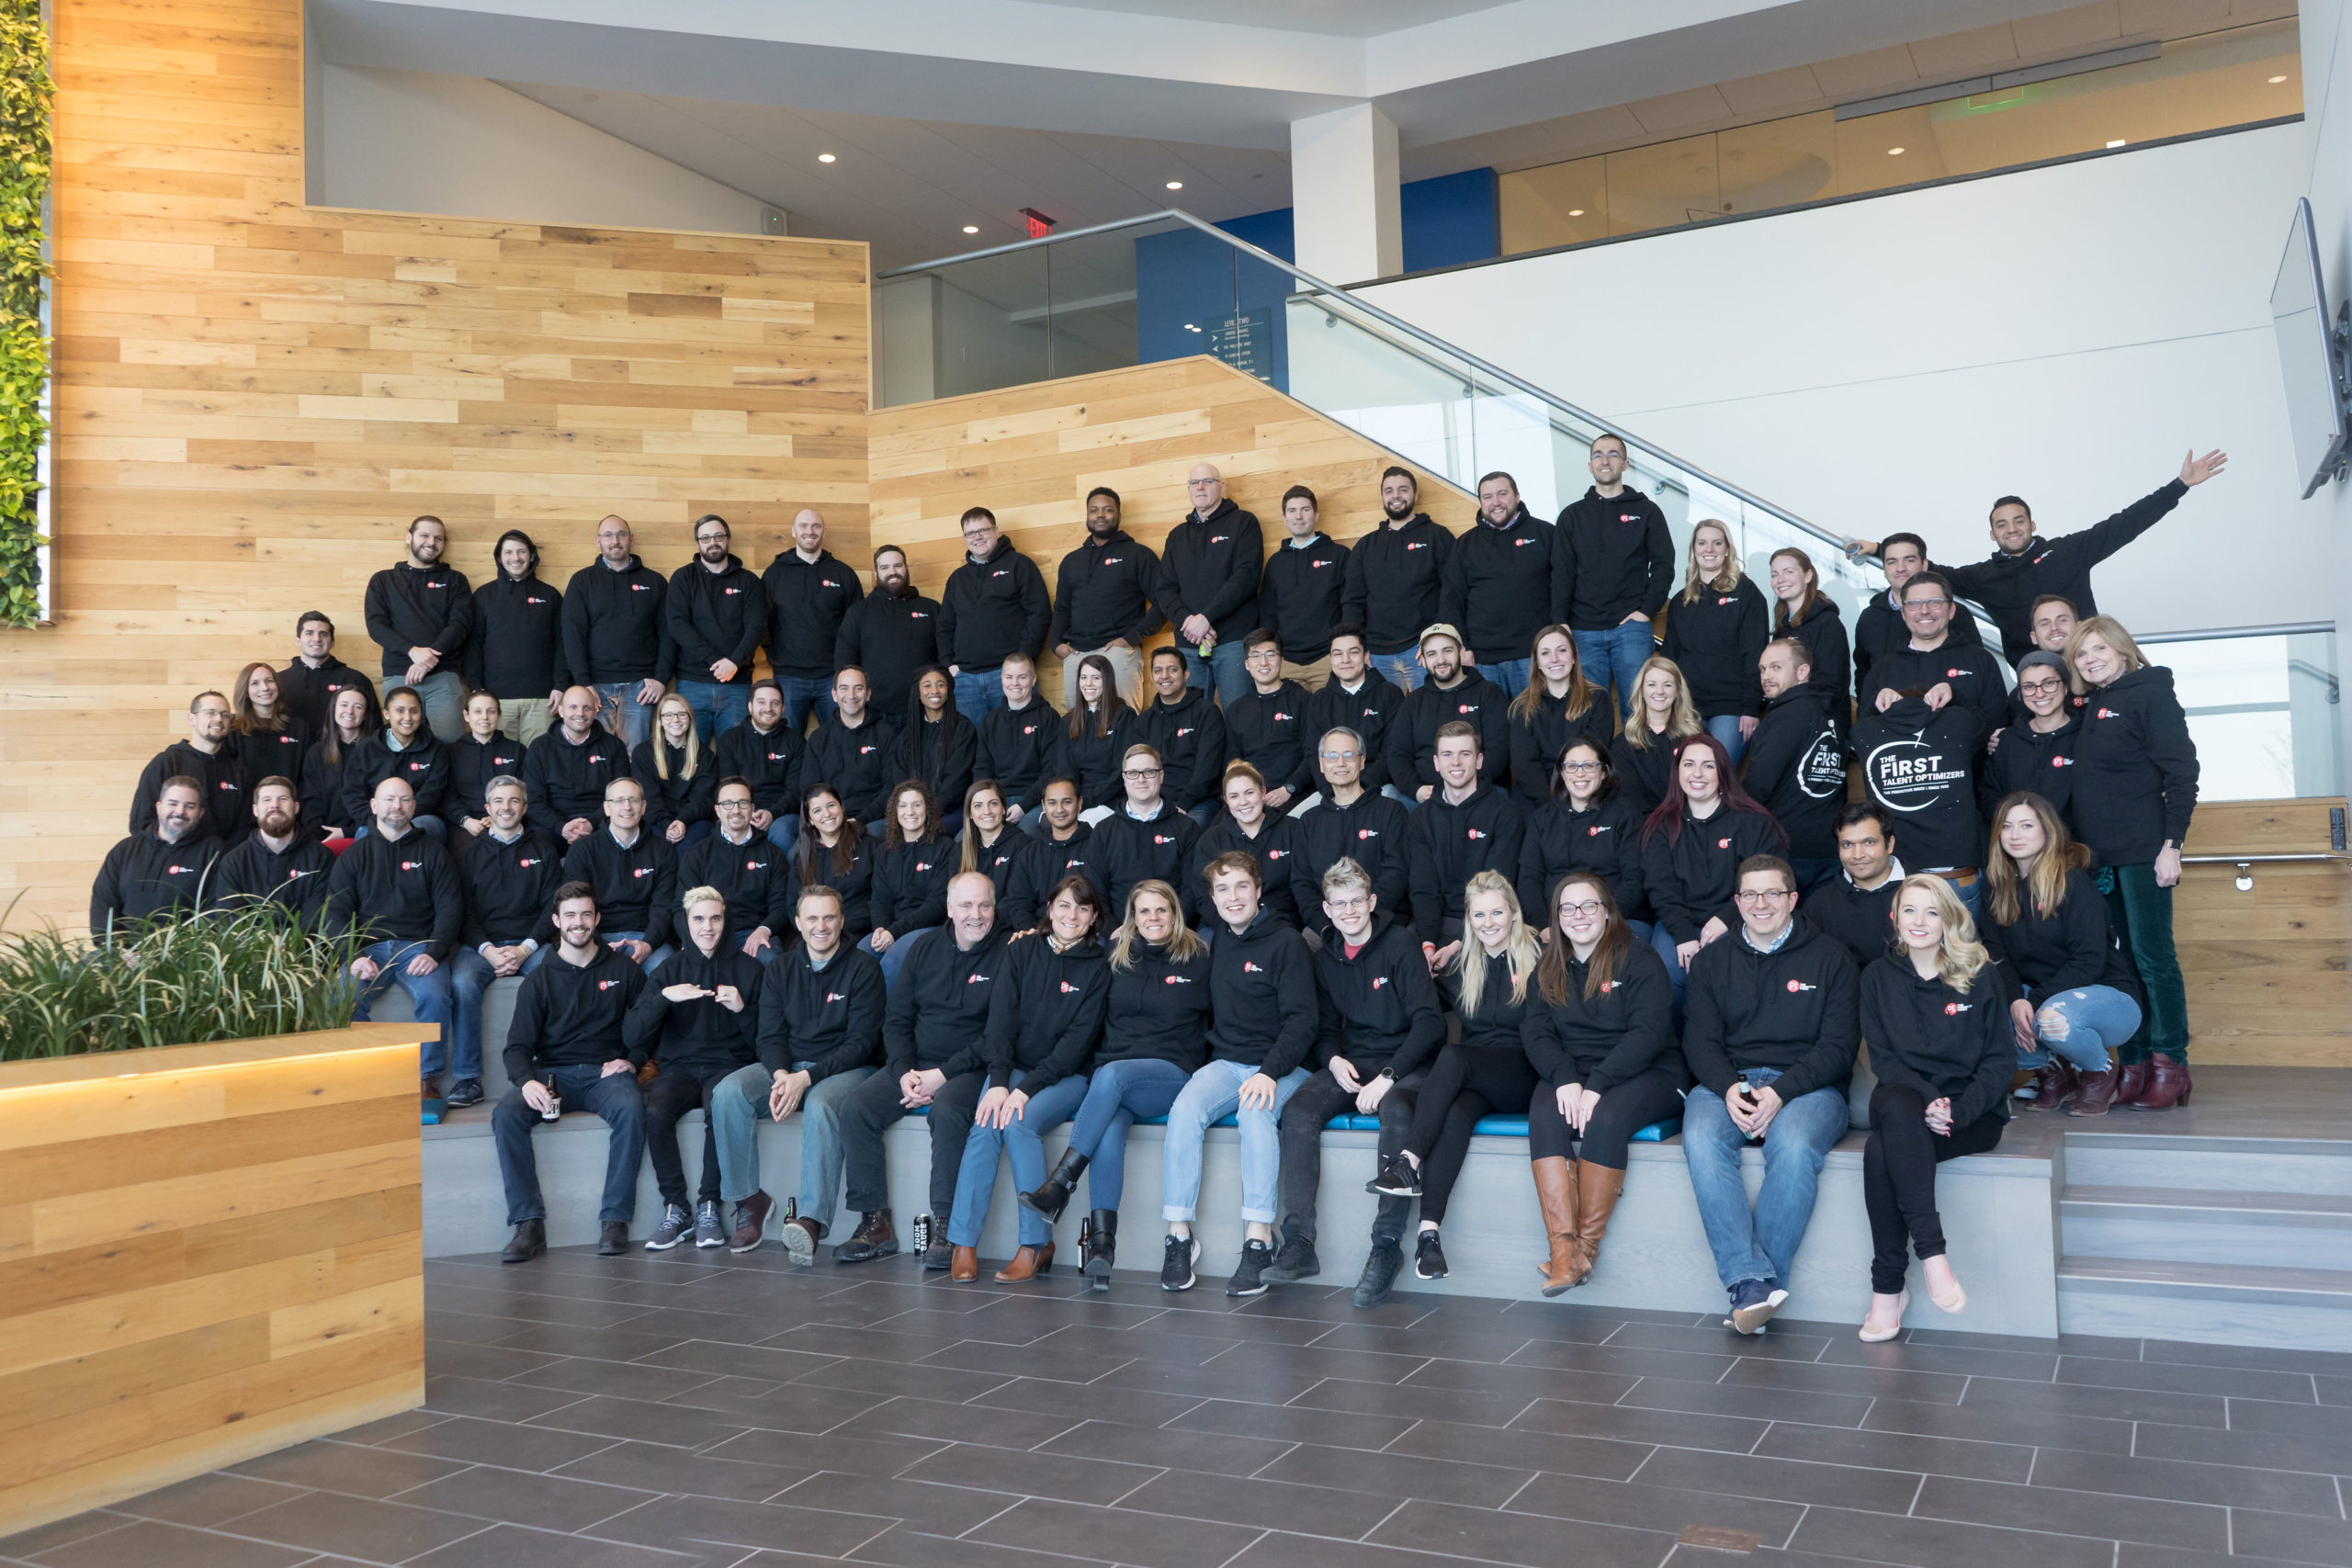 PI staff photo